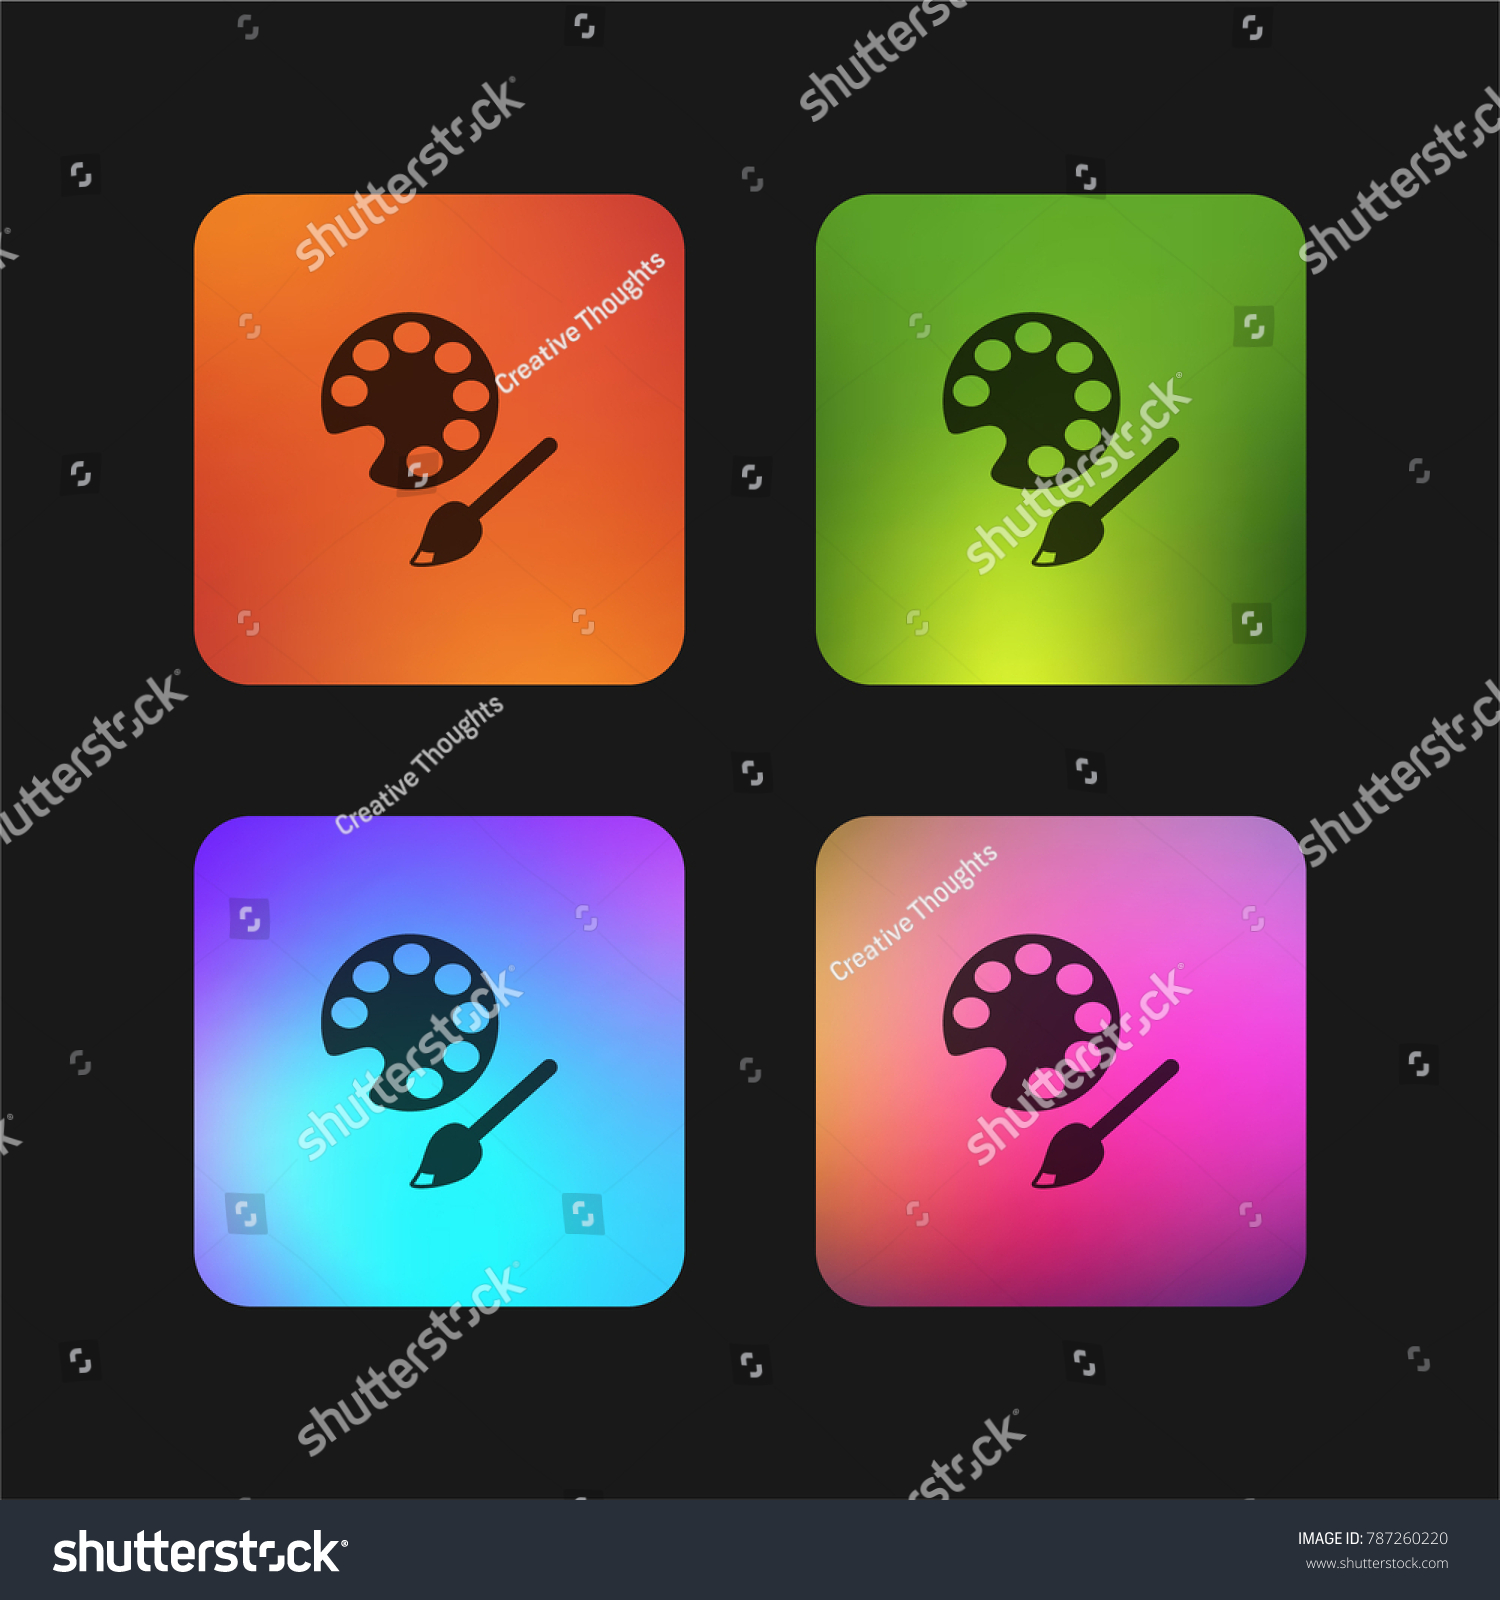 Color Palette With Brush For Art Education Four Gradient App Icon Design